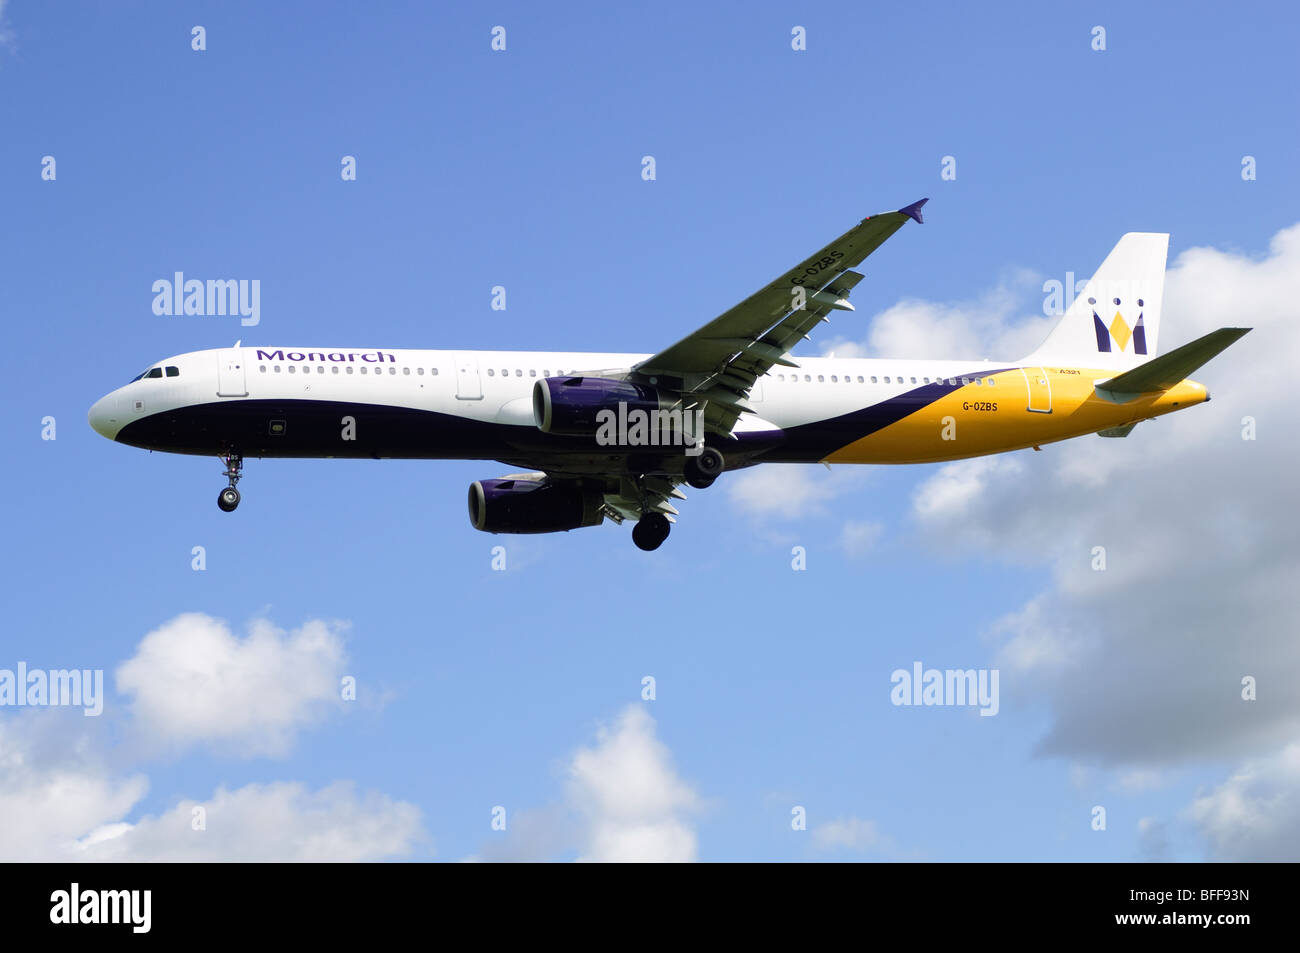 Airbus A321 operated by Monarch Airlines on approach for landing at Birmingham Airport Stock Photo